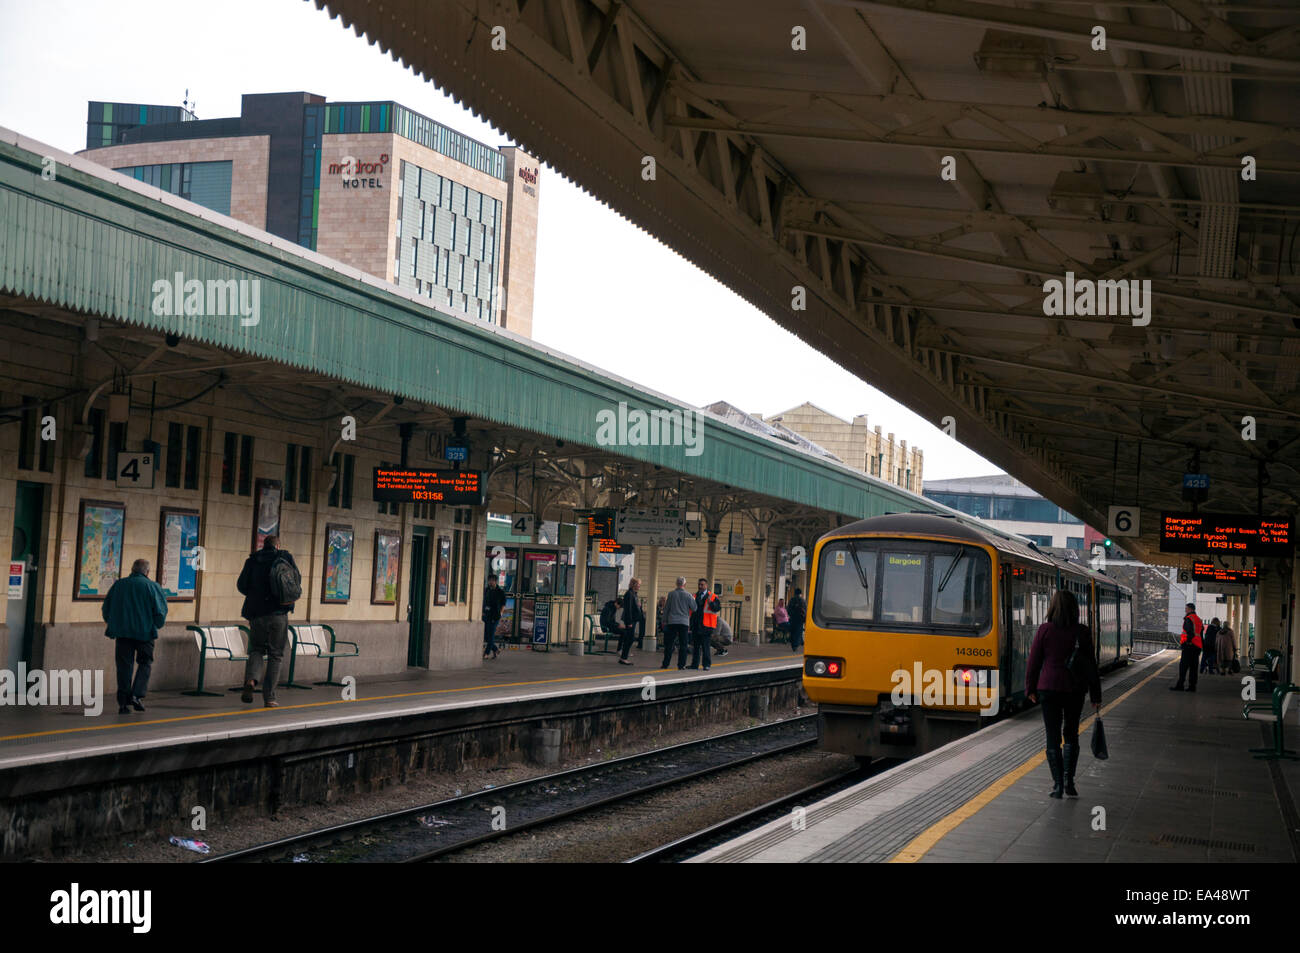 Passengers at Cardiff Central Station in Wales UK - Stock Image